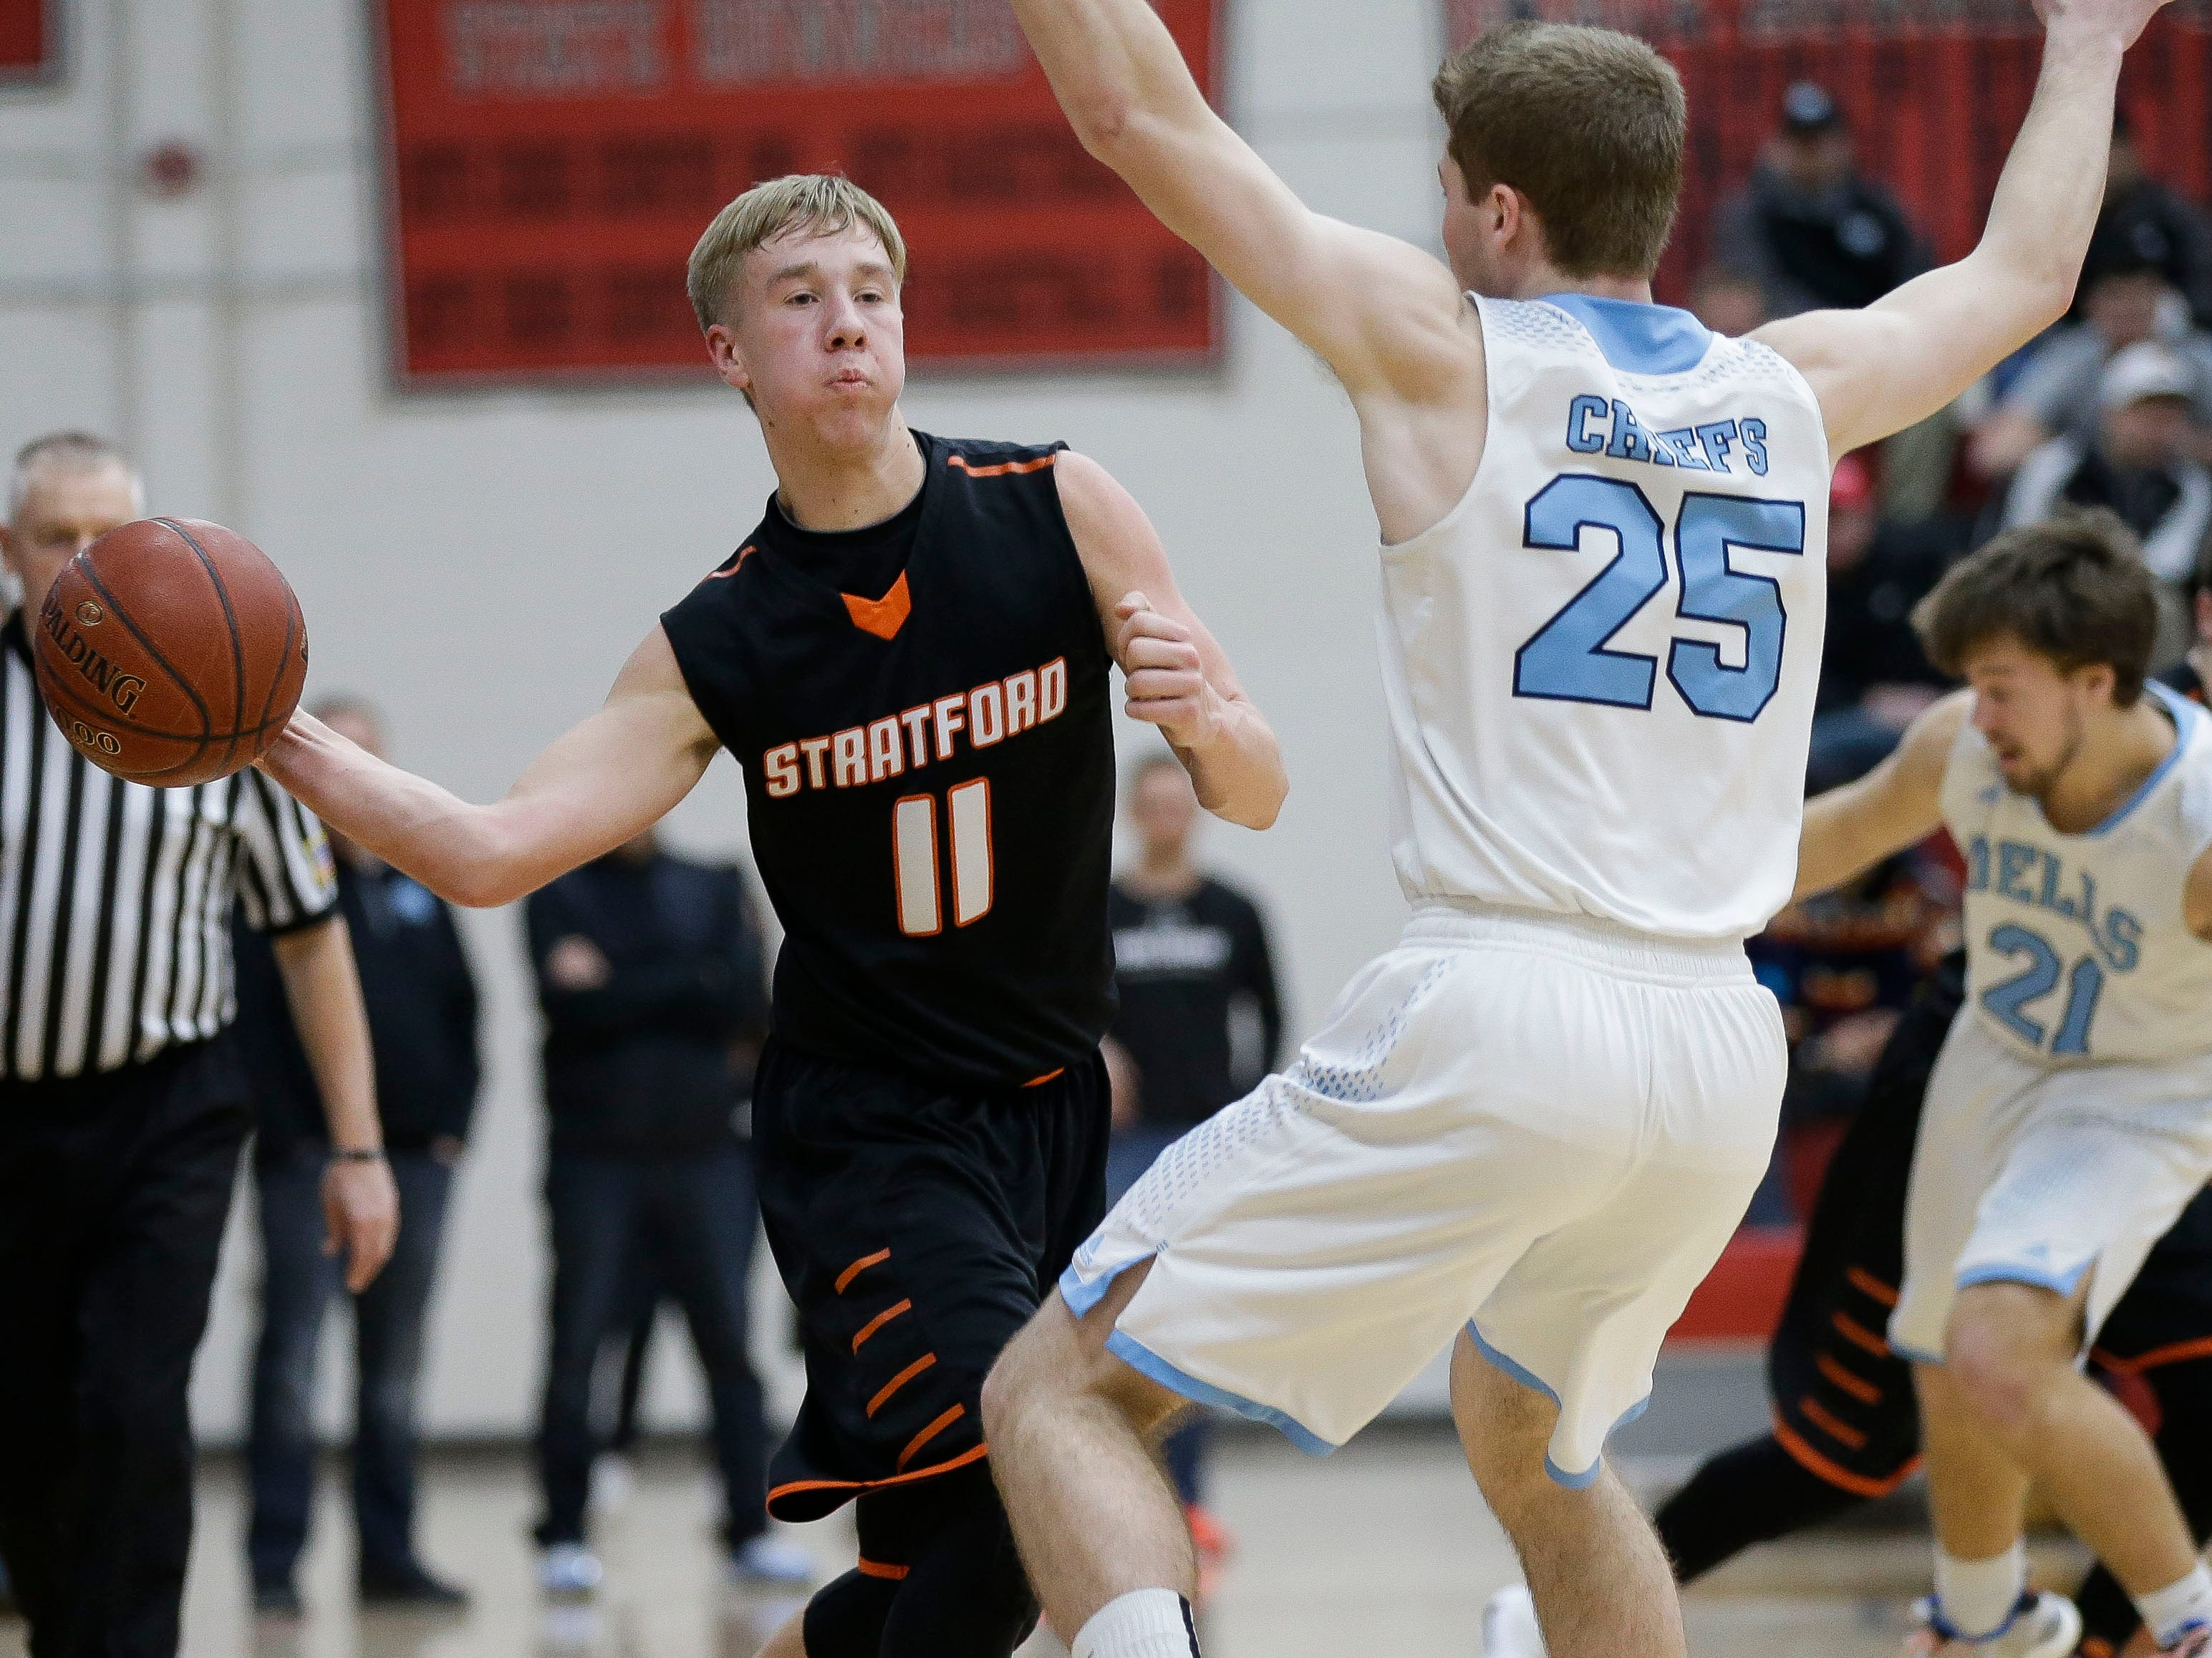 Stratford's Chandler Schmidt (11) passes the ball against Wisconsin Dells in a Division 3 sectional semifinal on Thursday, March 7, 2019, at Stevens Point Area High School in Stevens Point, Wis. Tork Mason/USA TODAY NETWORK-Wisconsin